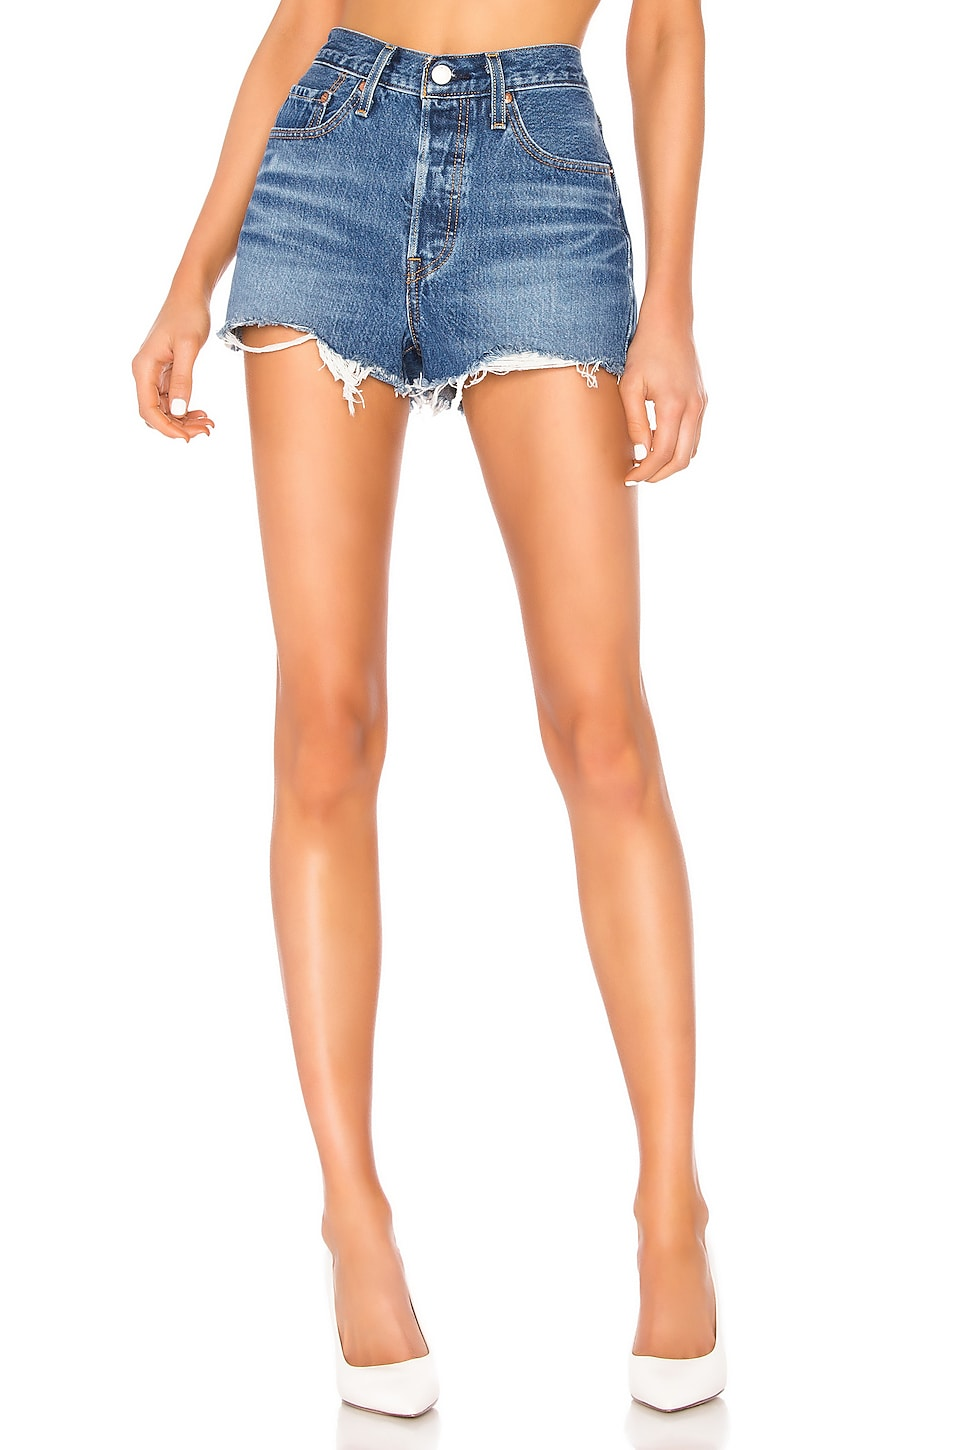 LEVI'S X REVOLVE 501 High Rise Short in Indigo Avenue